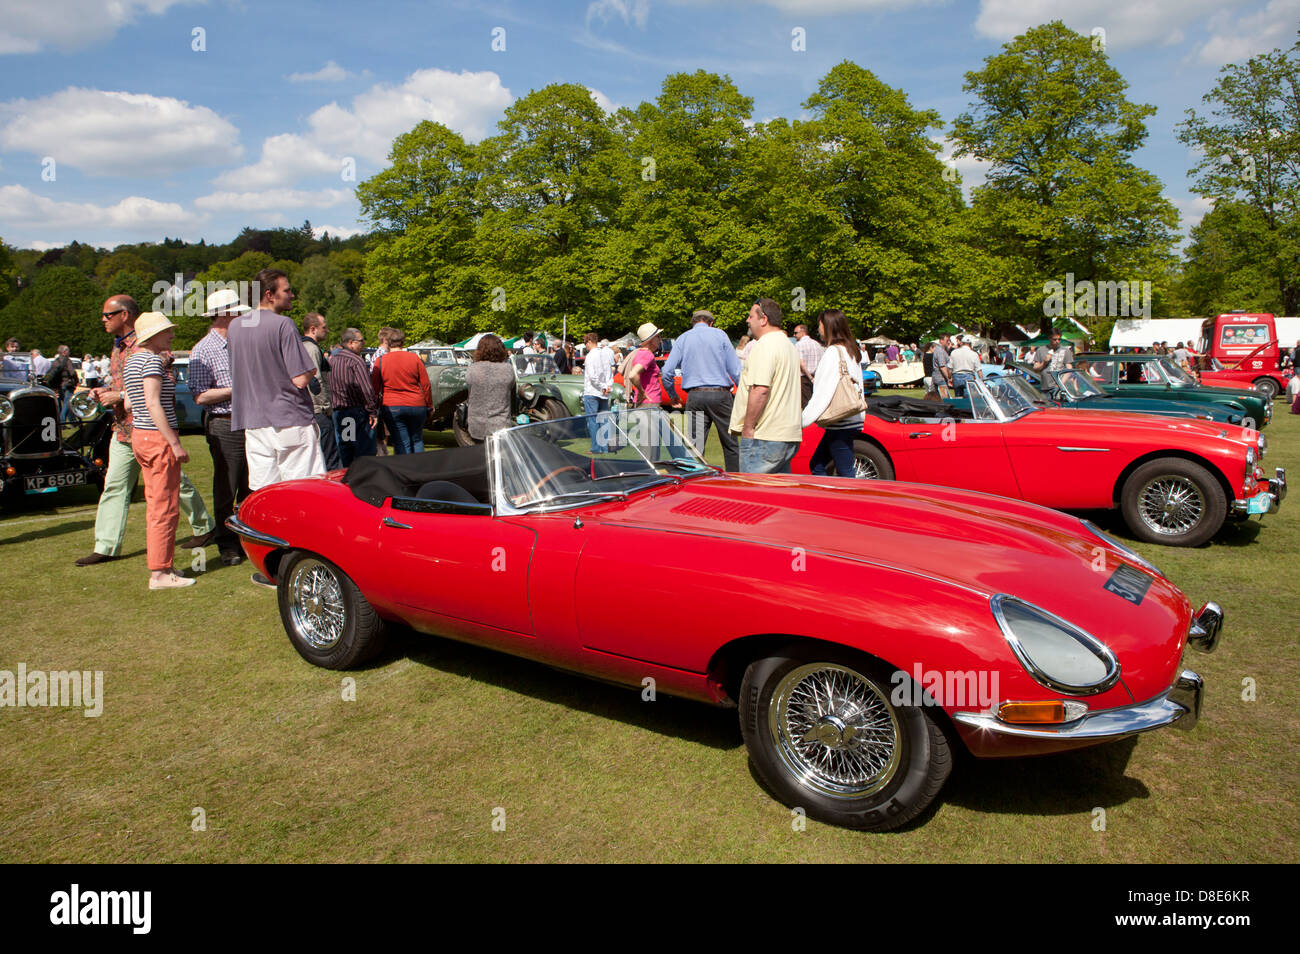 Classic sports cars on show at Haslemere Classic Car Show May 26th 2013 - Stock Image